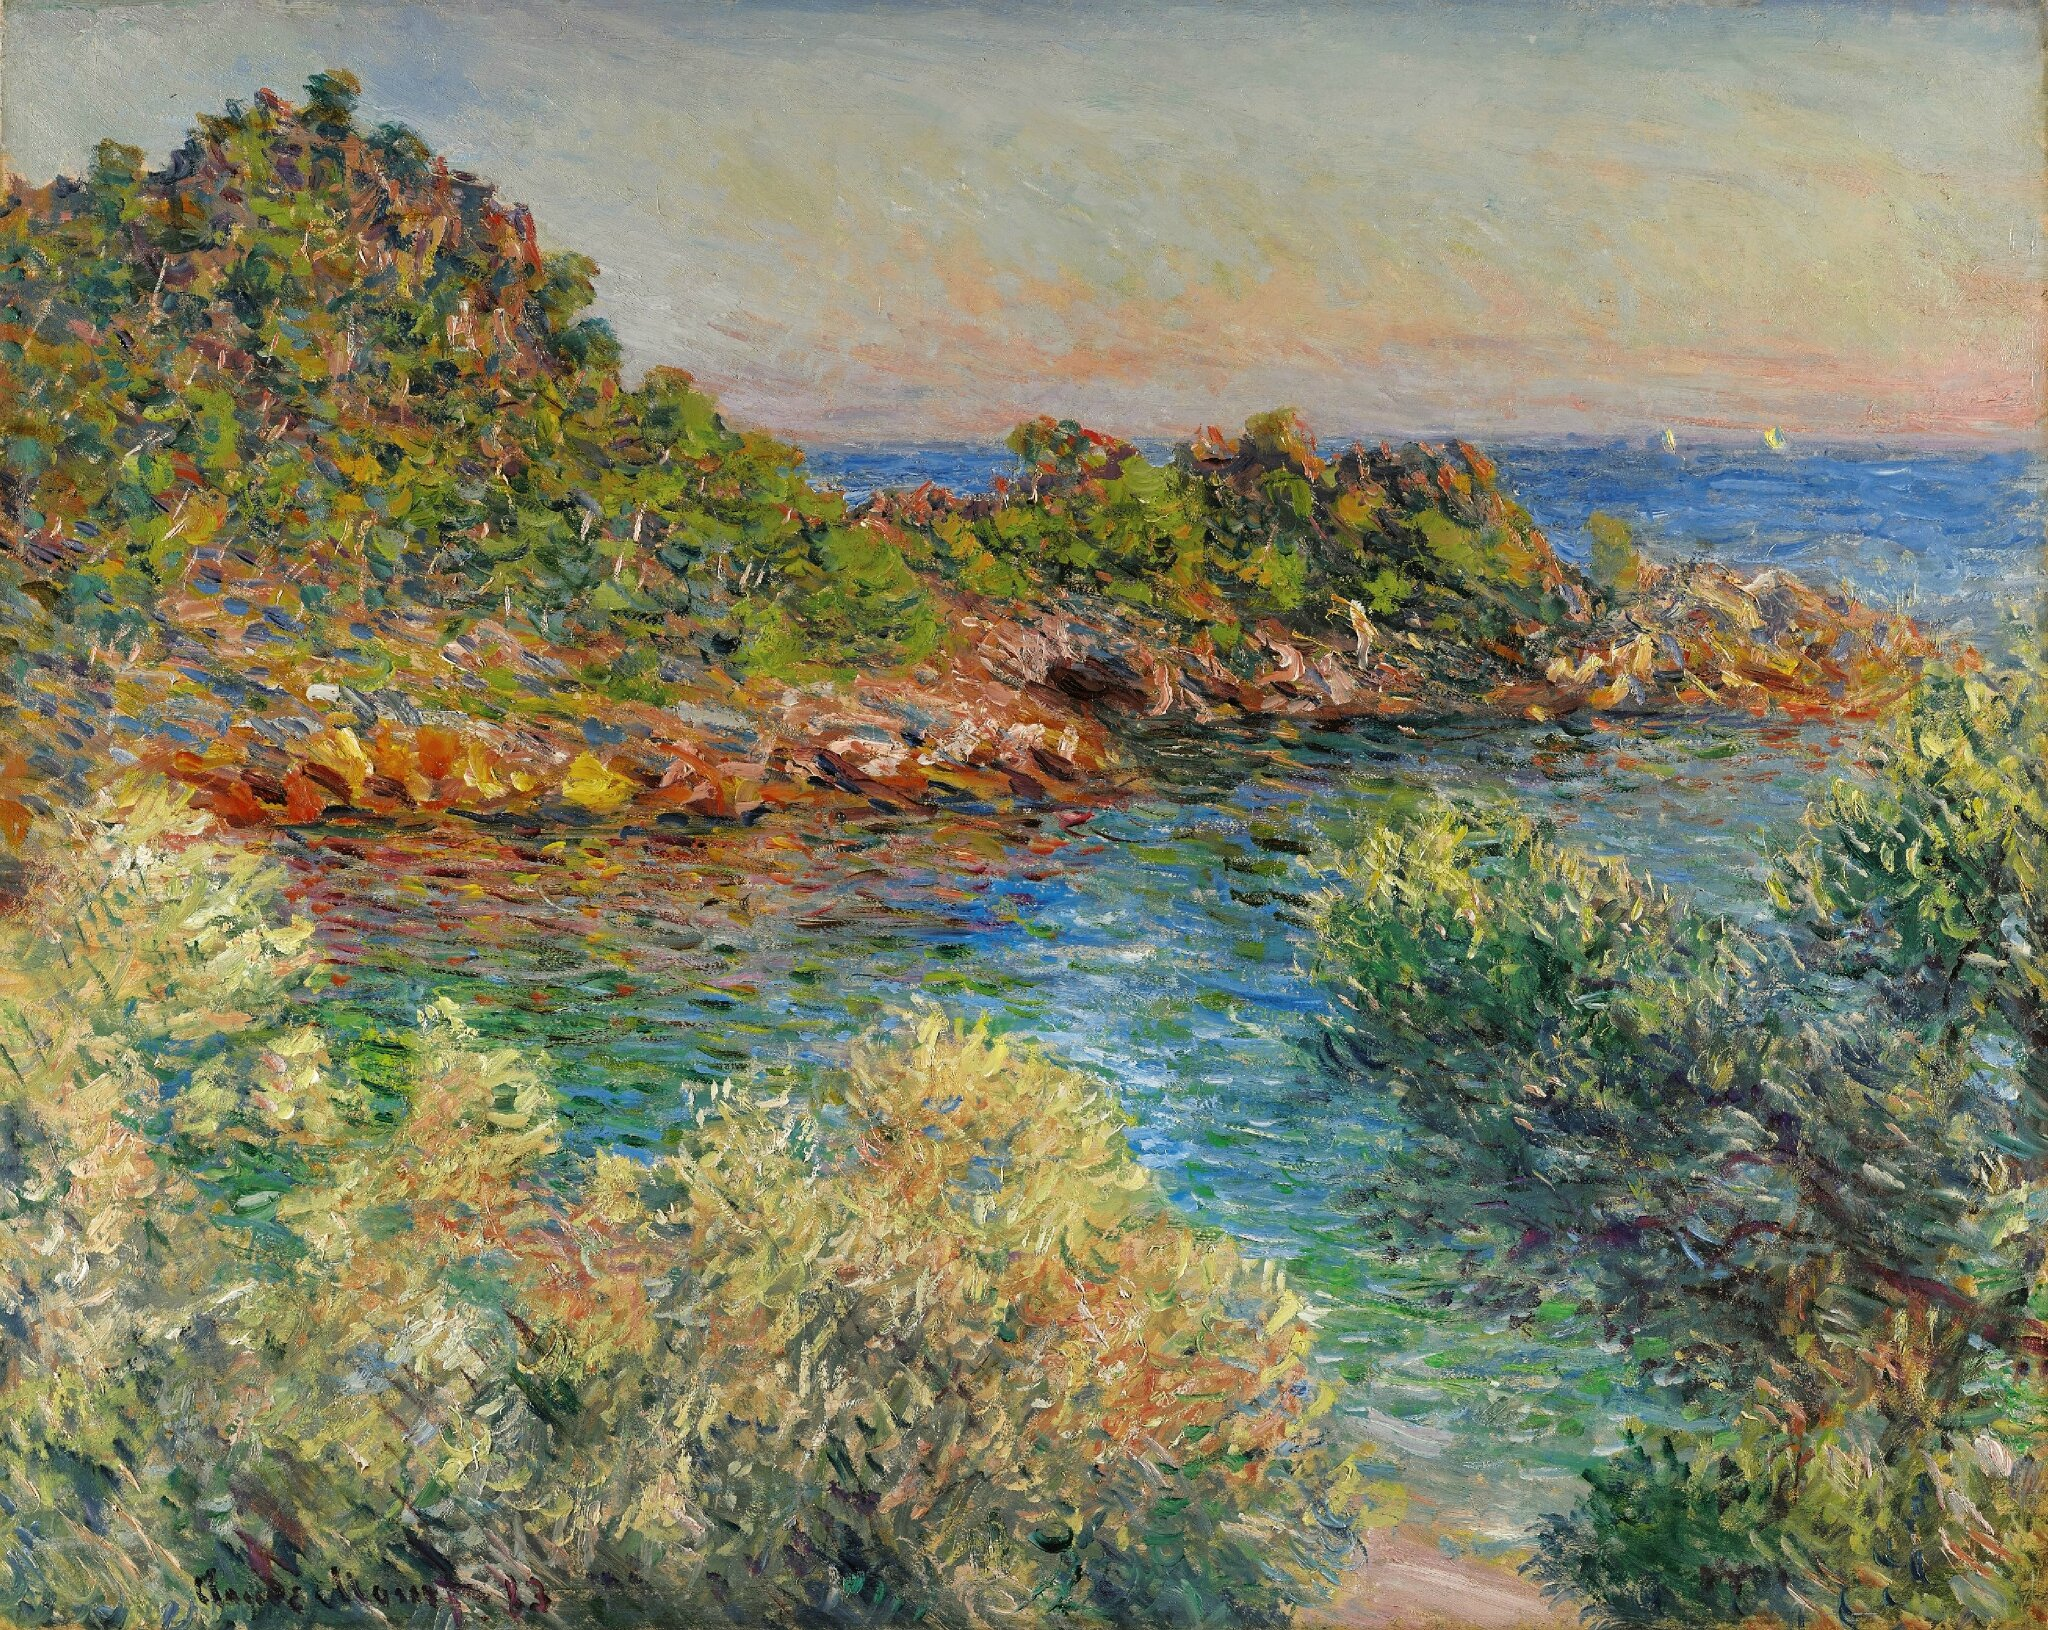 How To Paint Like An Impressionist Artist